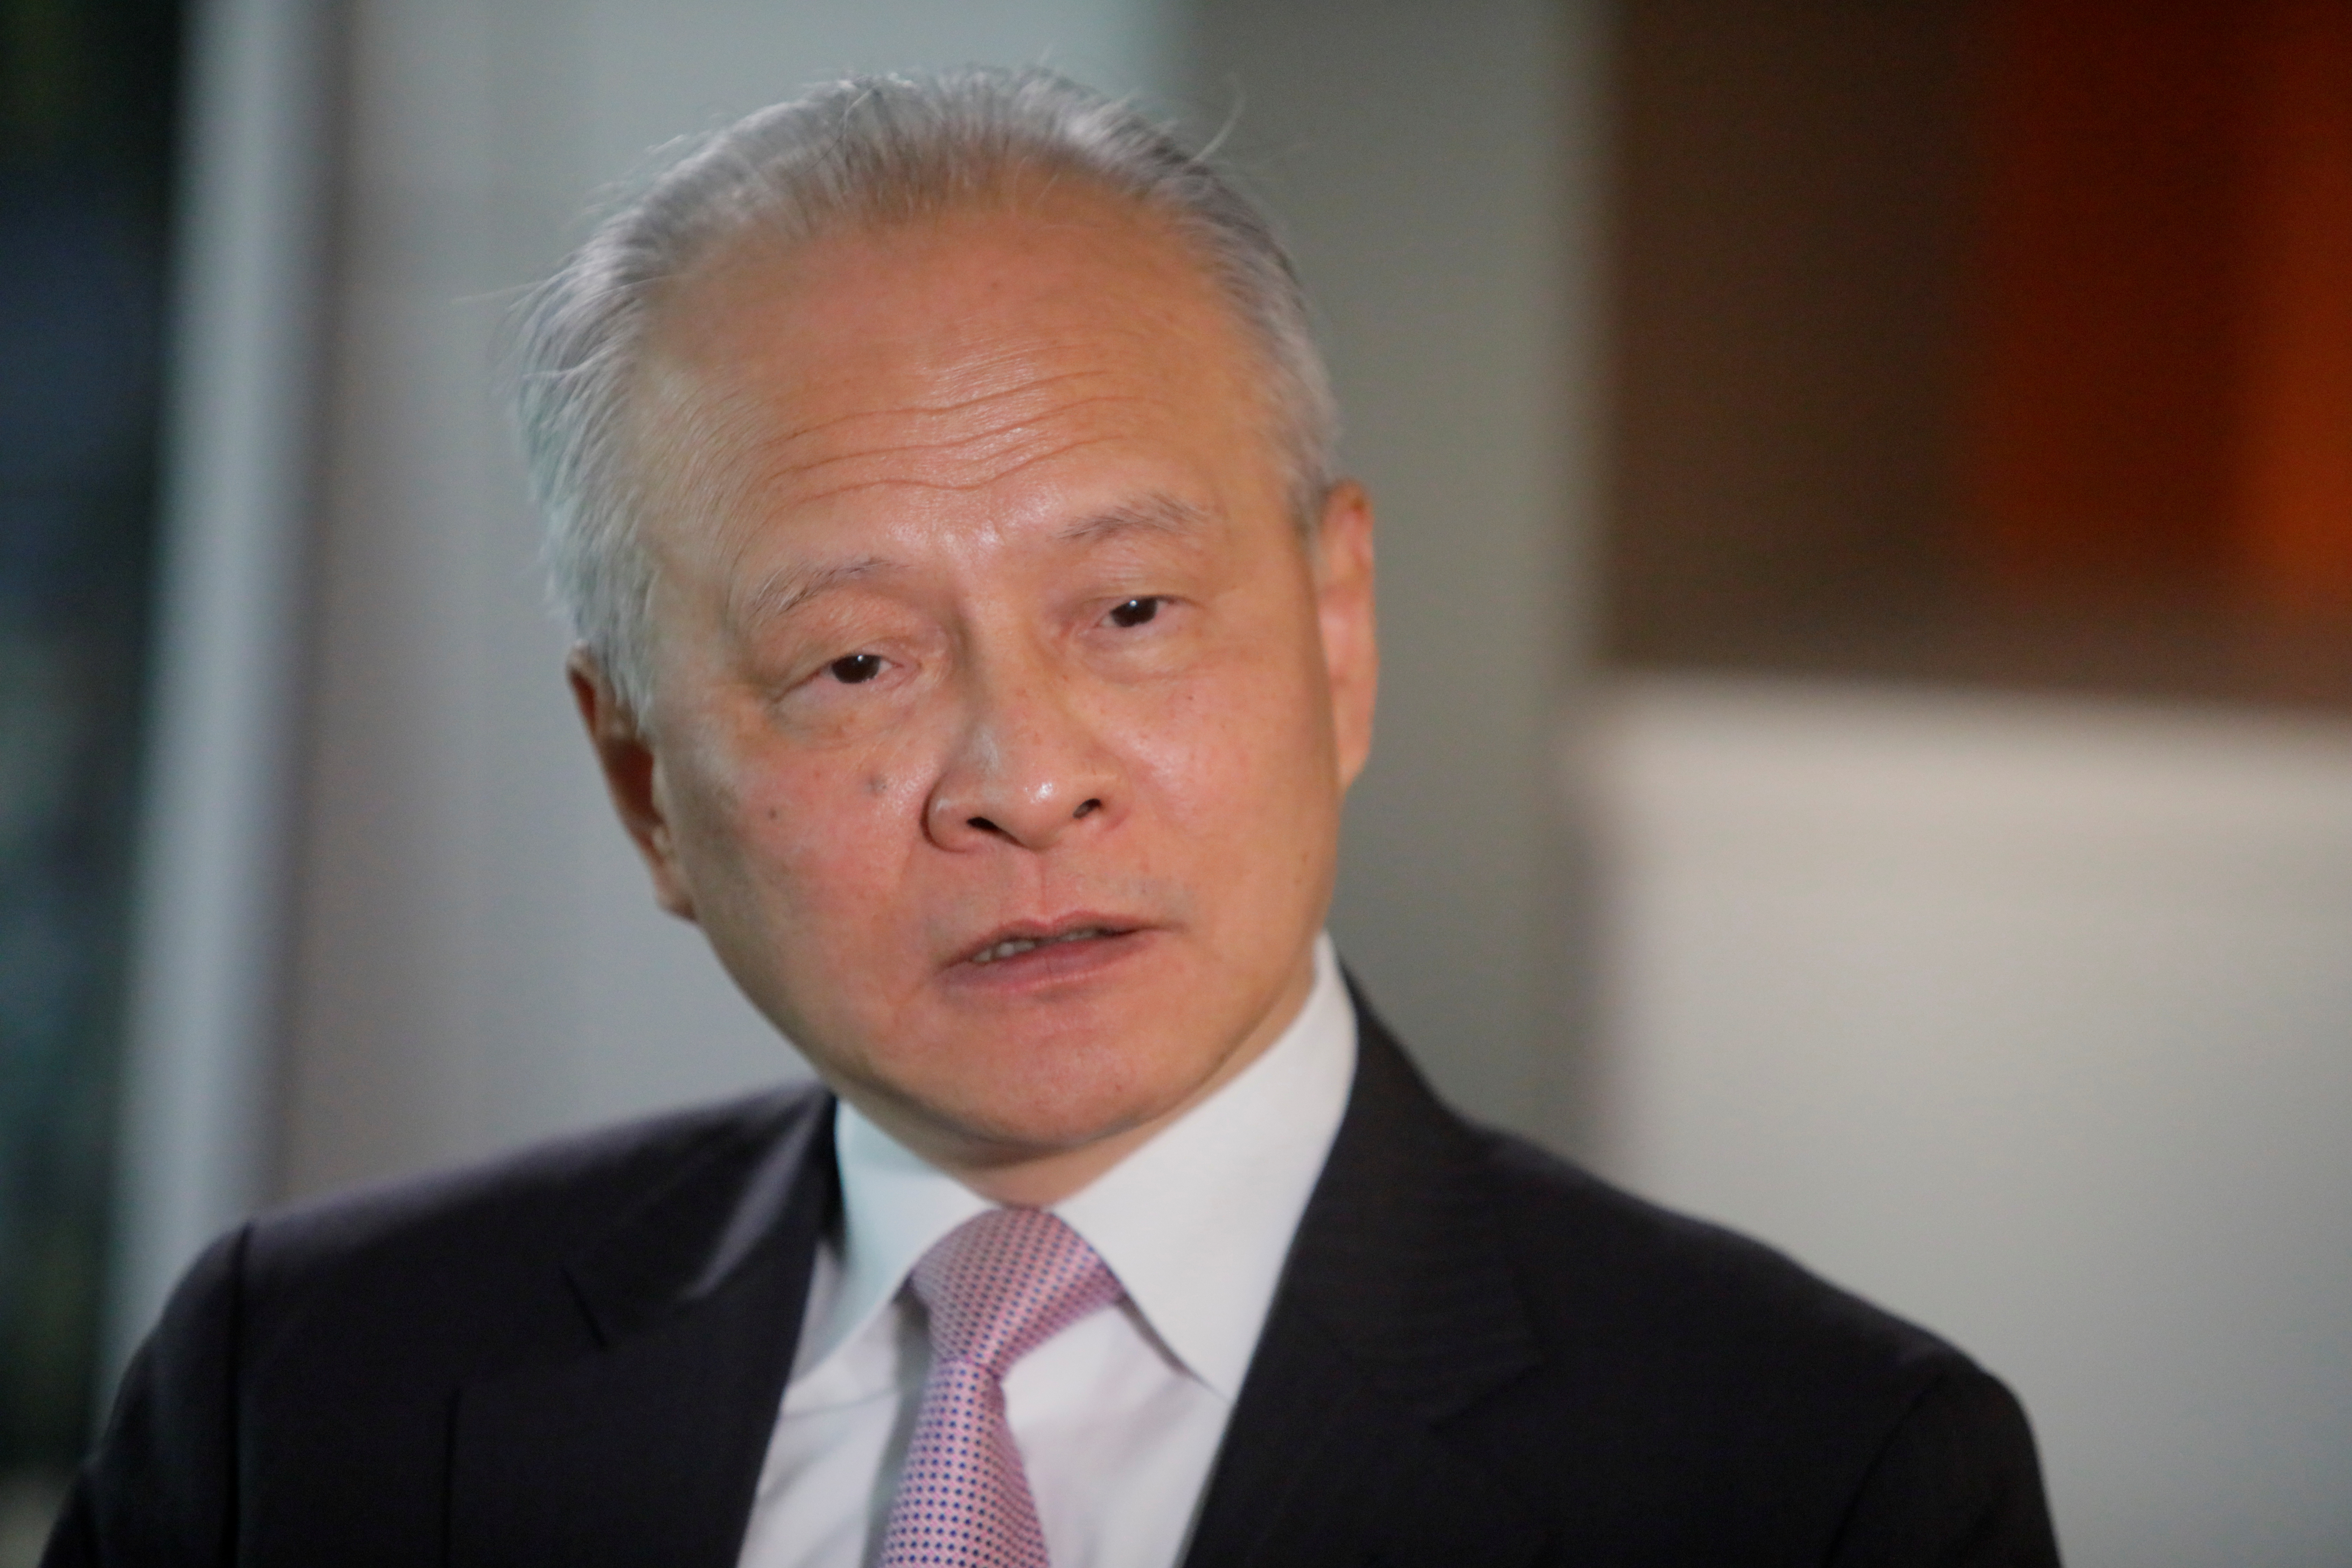 China's ambassador to the United States Cui Tiankai responds to reporters questions during an interview with Reuters in Washington, U.S., November 6, 2018. REUTERS/Jim Bourg